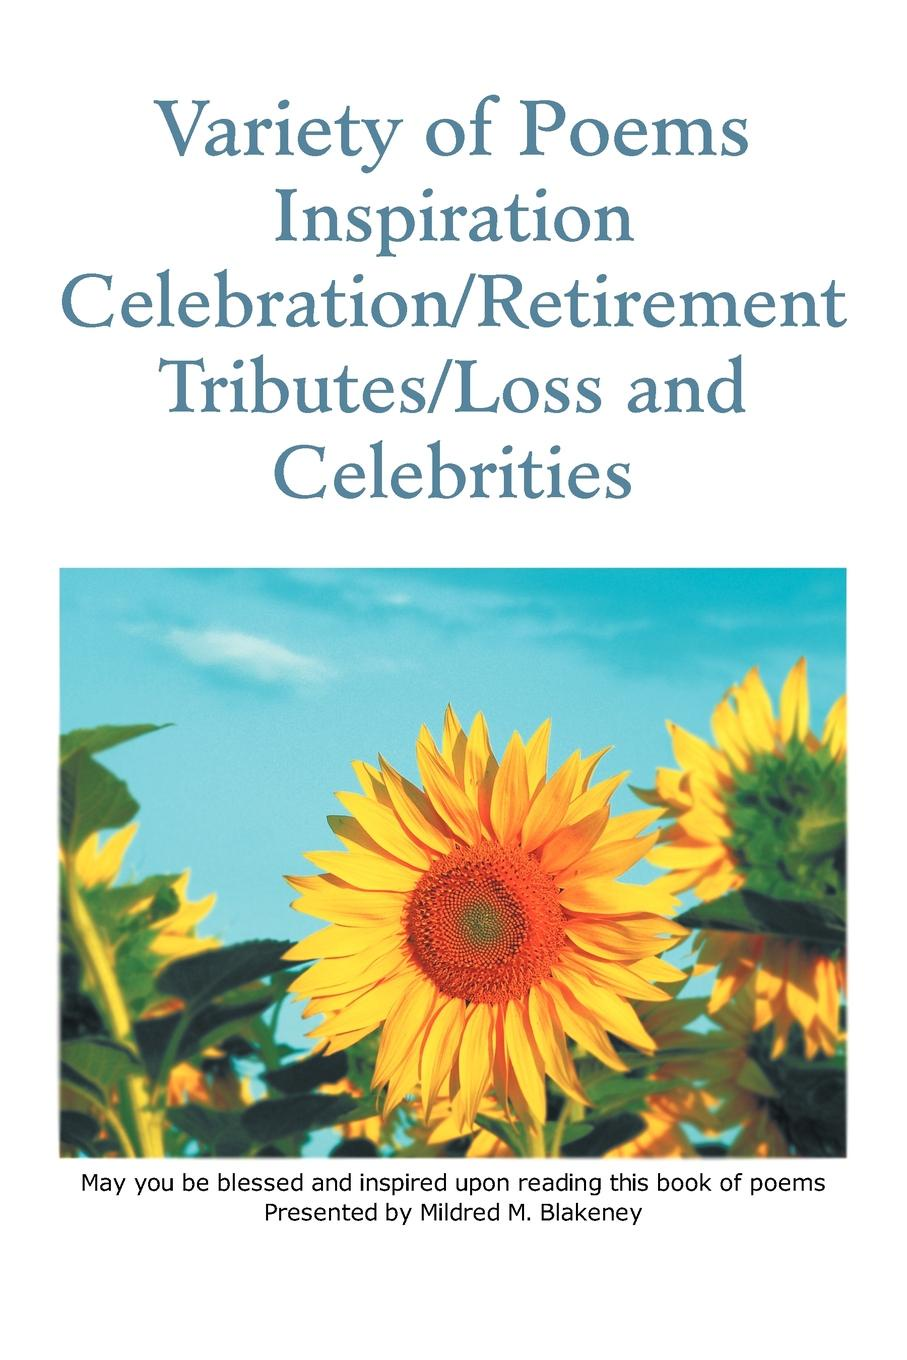 Mildred M. Blakeney Variety of Poems Inspiration Celebration/Retirement Tributes/Loss and Celebrities celebrities tricot накидка